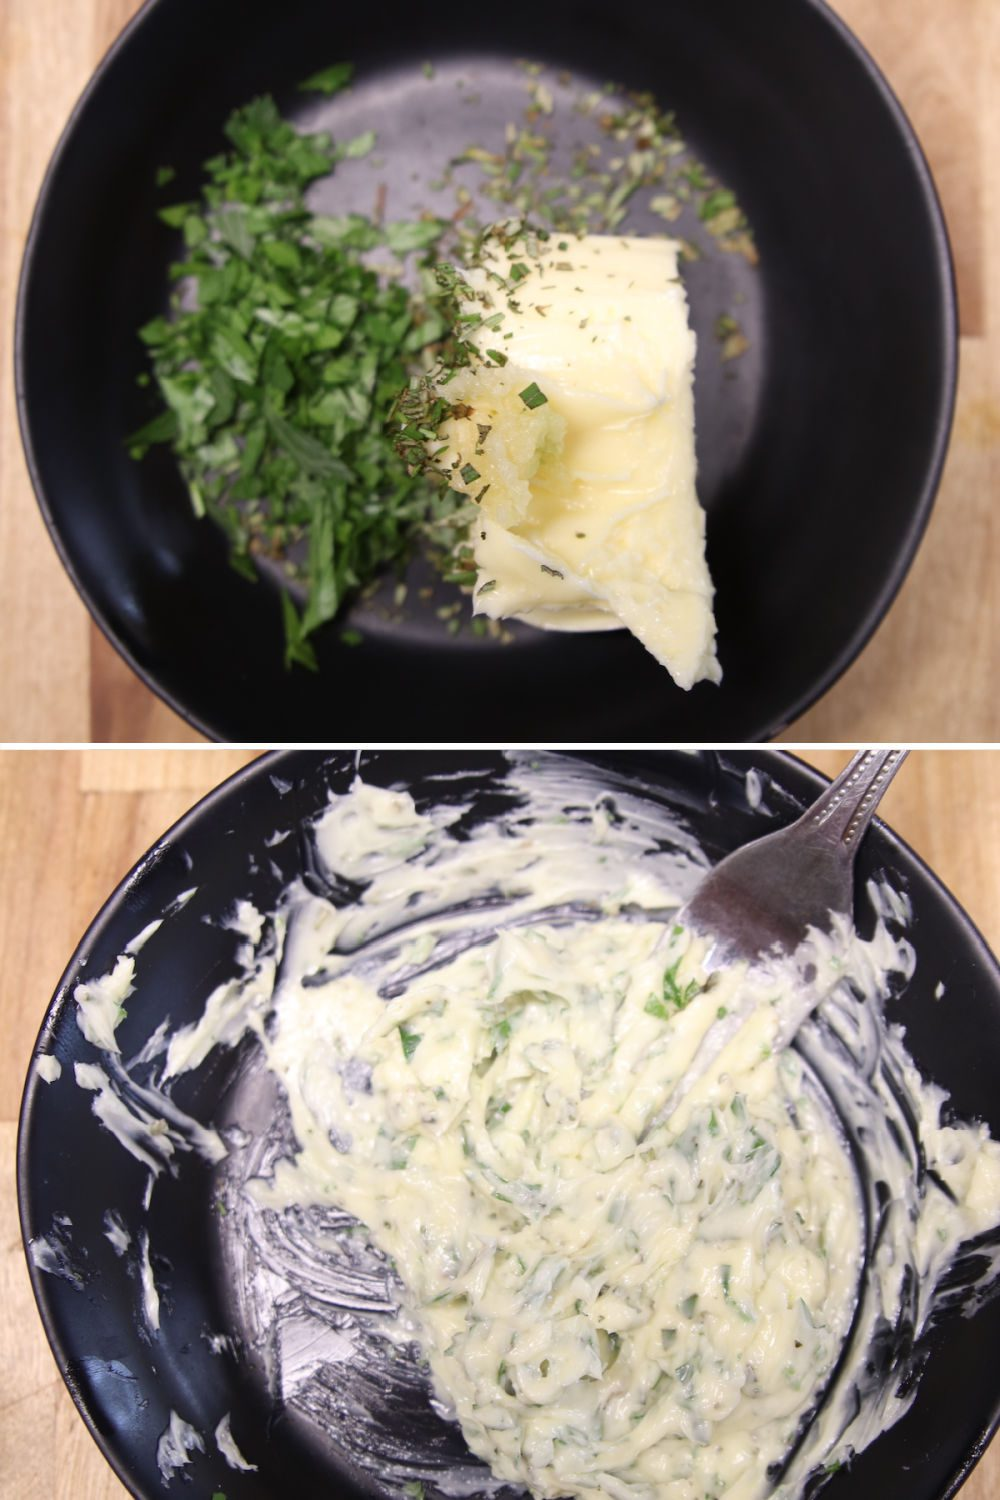 collage making garlic butter with rosemary and parsley: ingredients/mixed